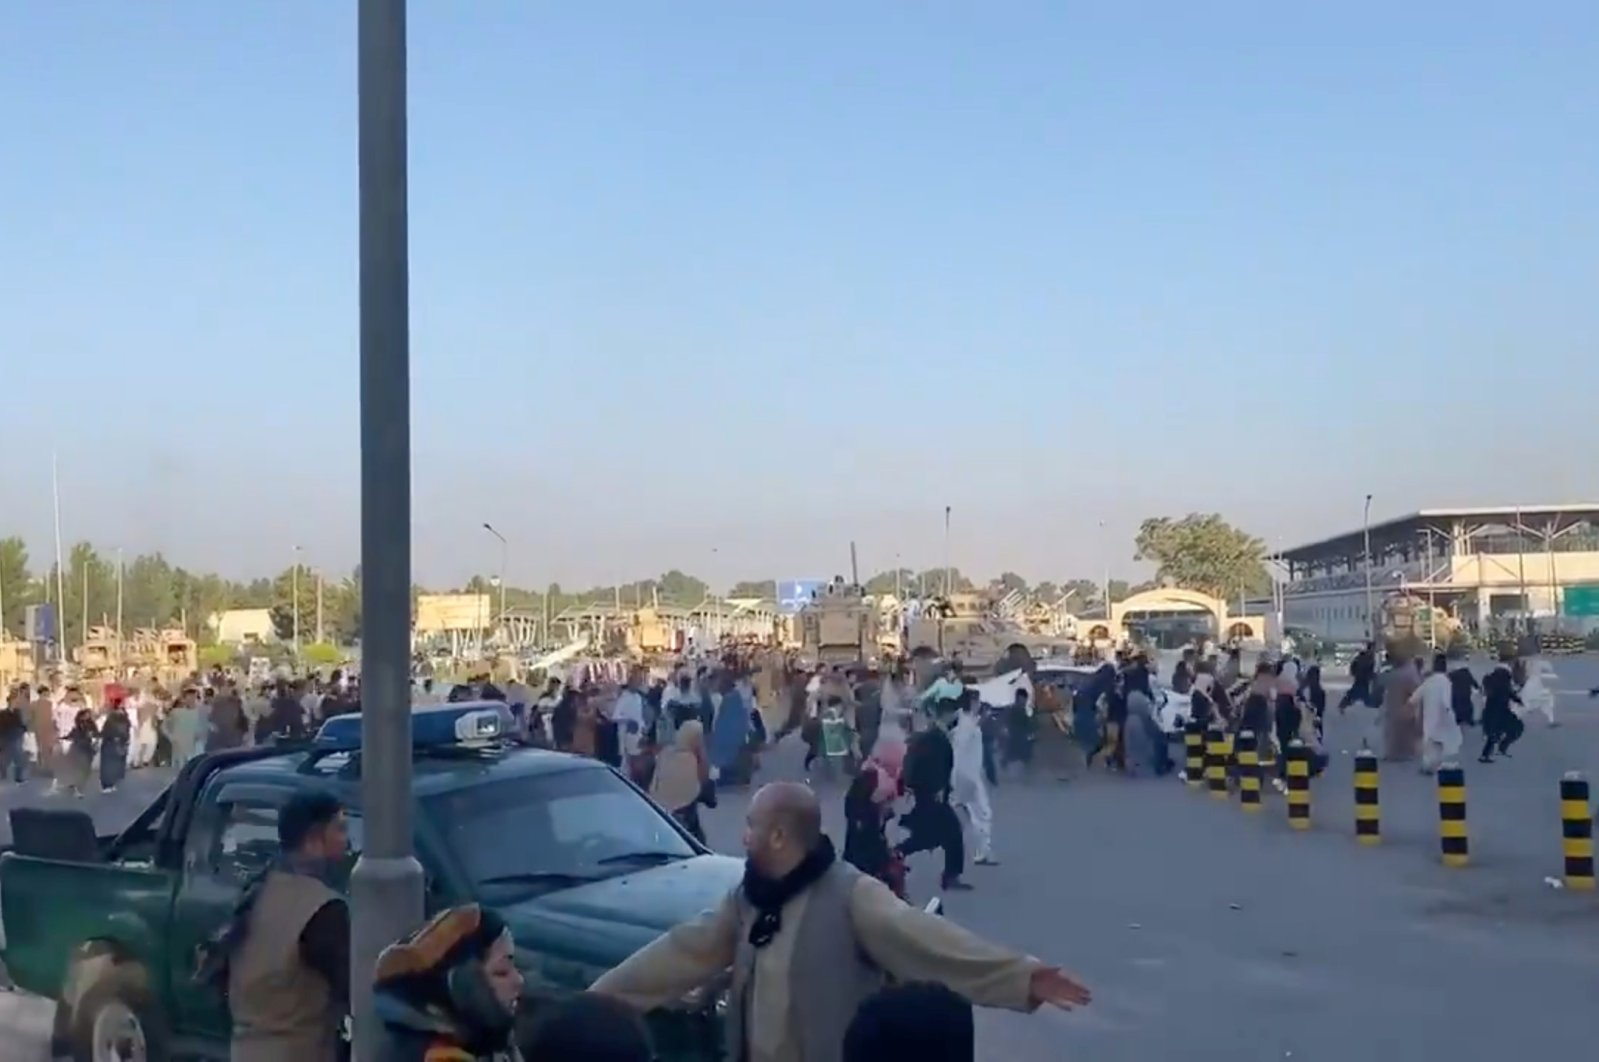 In this still image taken from social media, a horde of people run towards the Kabul Hamid Karzai Internation Airport terminal, after Taliban insurgents took control of the presidential palace in Kabul, Afghanistan, Aug. 16, 2021. (Jawad Sukhanyar via Reuters)